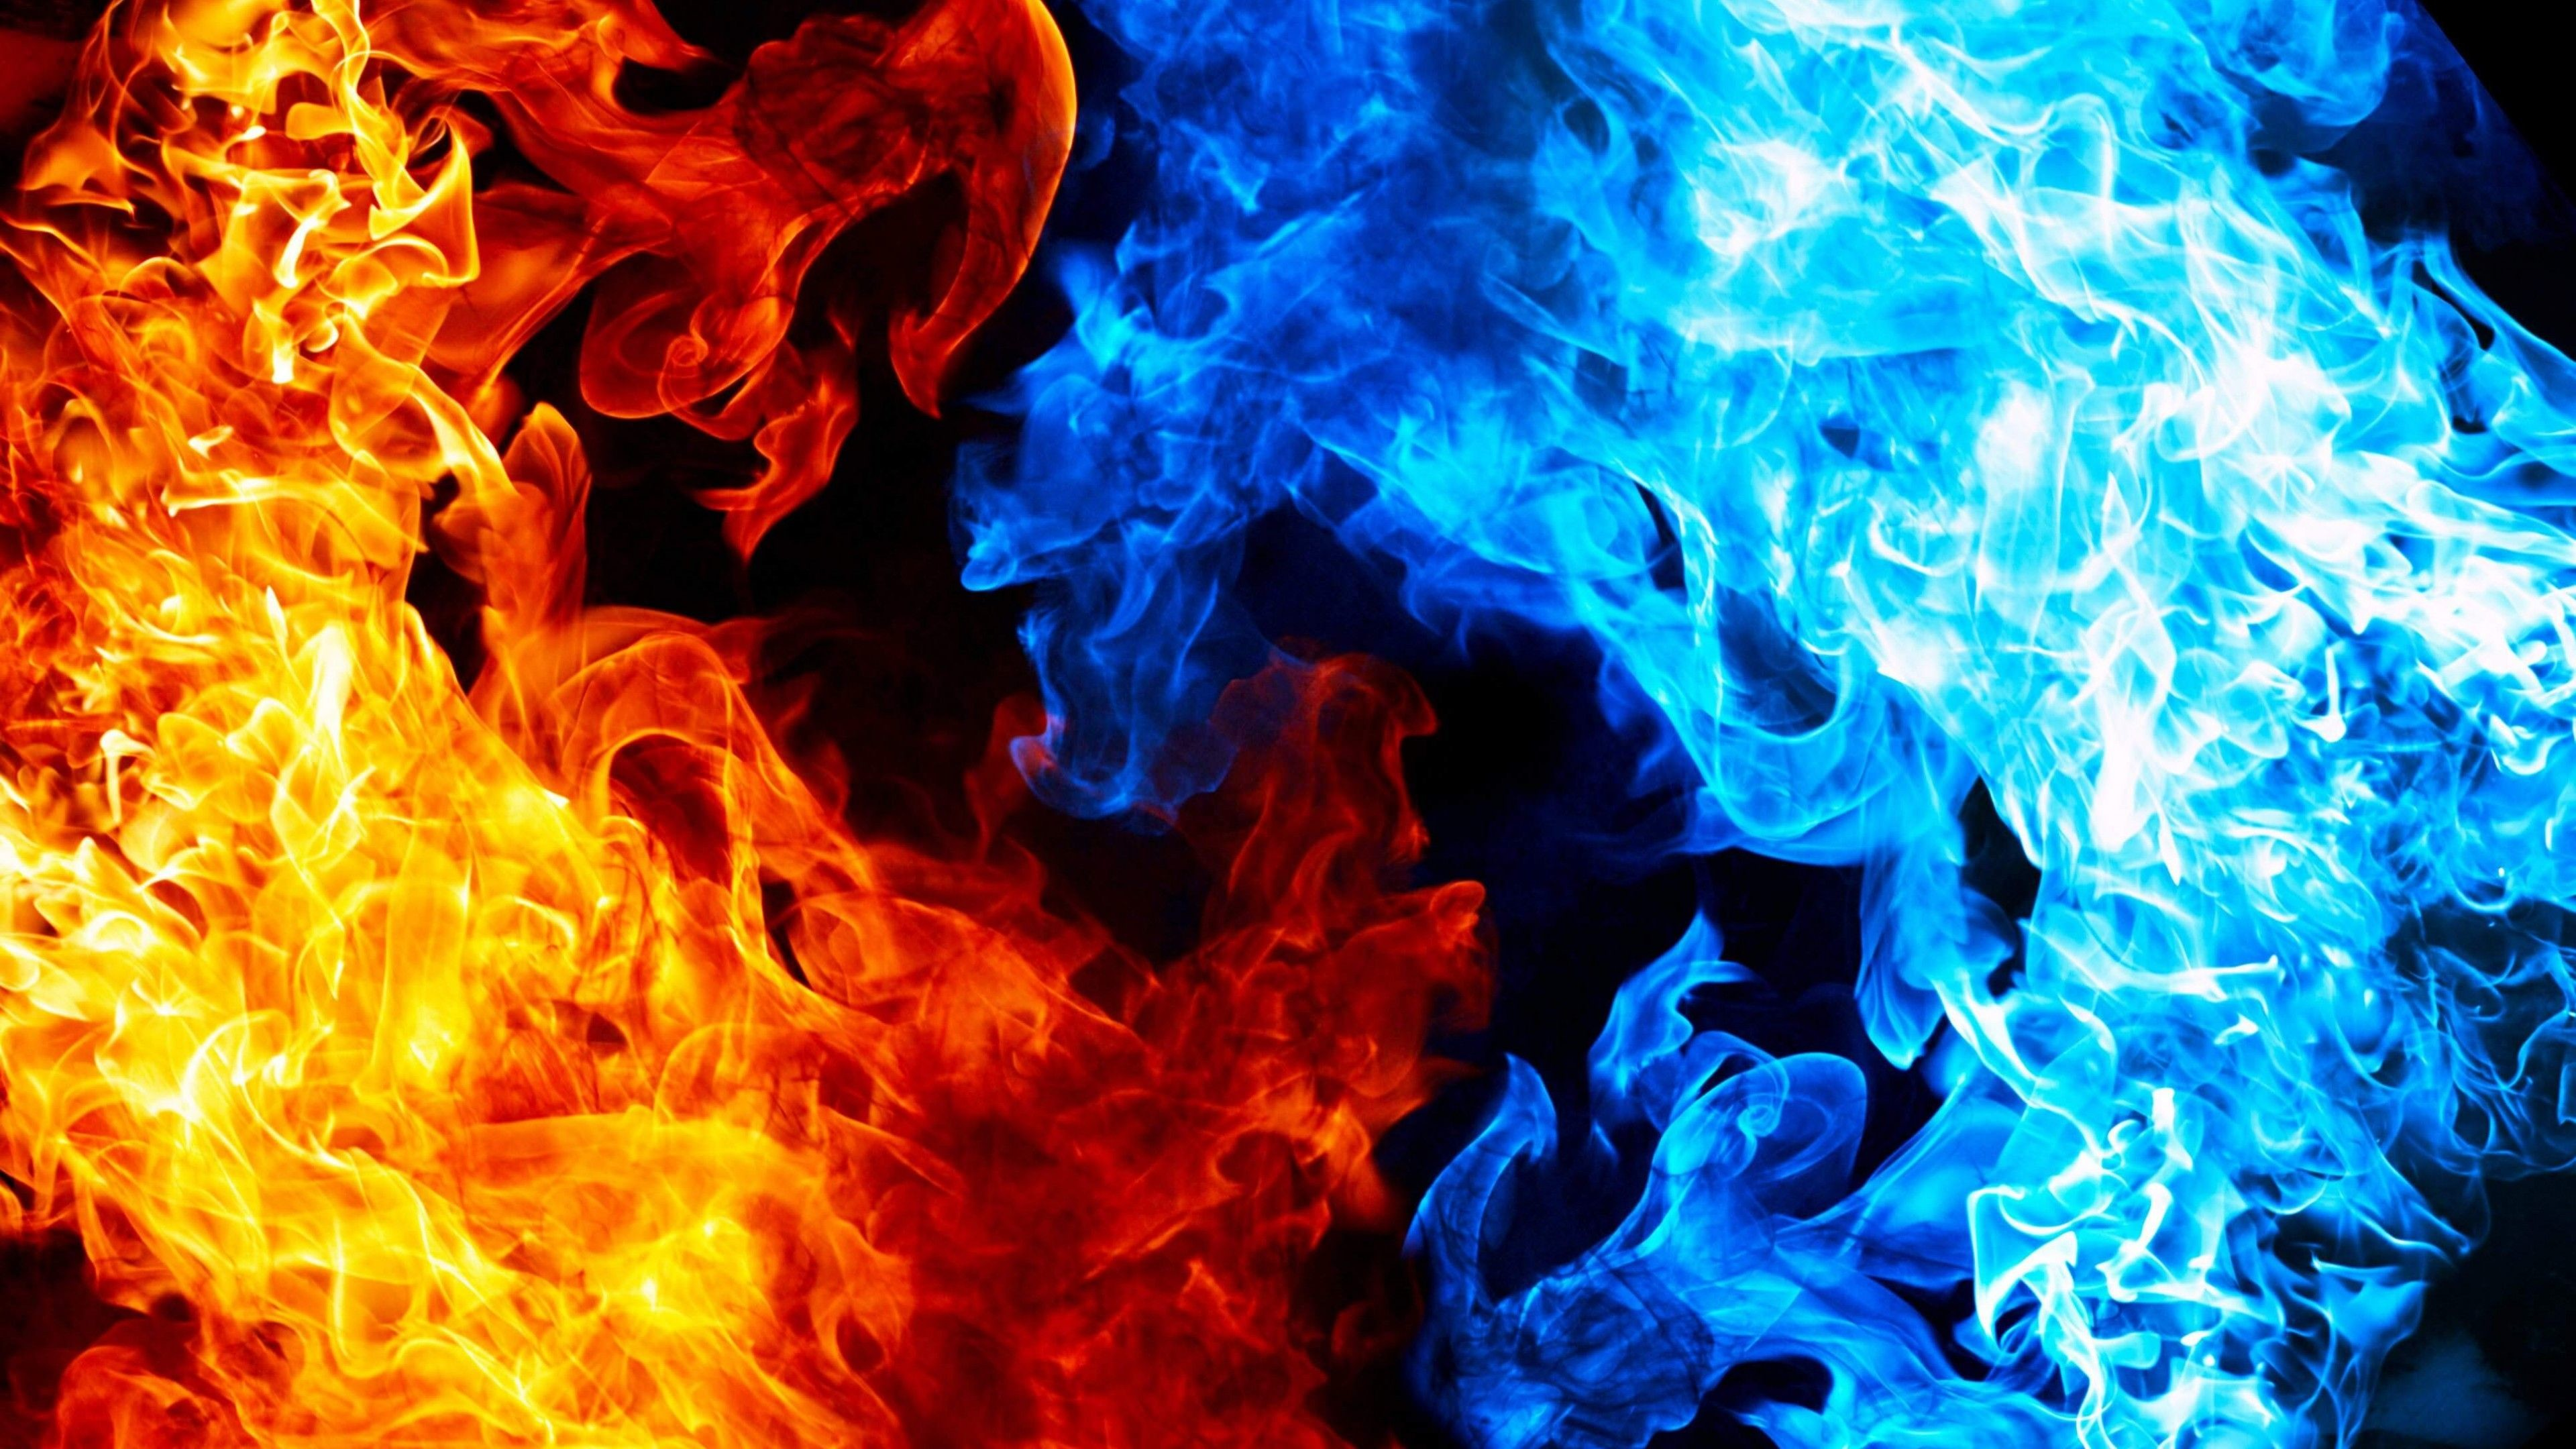 3840x2160 - Red and Blue Fire 9